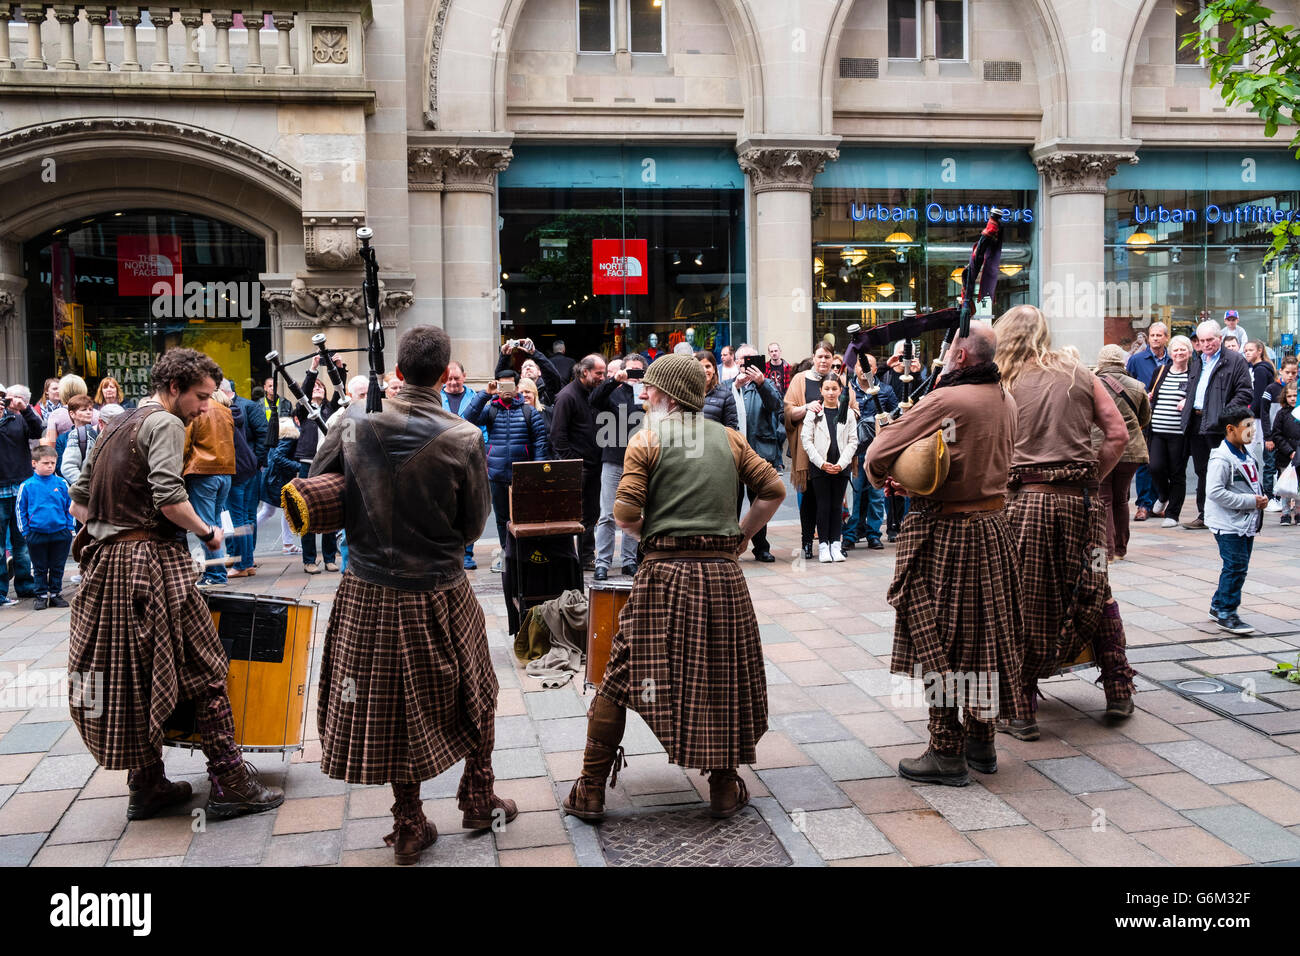 Scottish street buskers in kilts playing traditional music on Buchanan Street in Glasgow Scotland United Kingdom - Stock Image